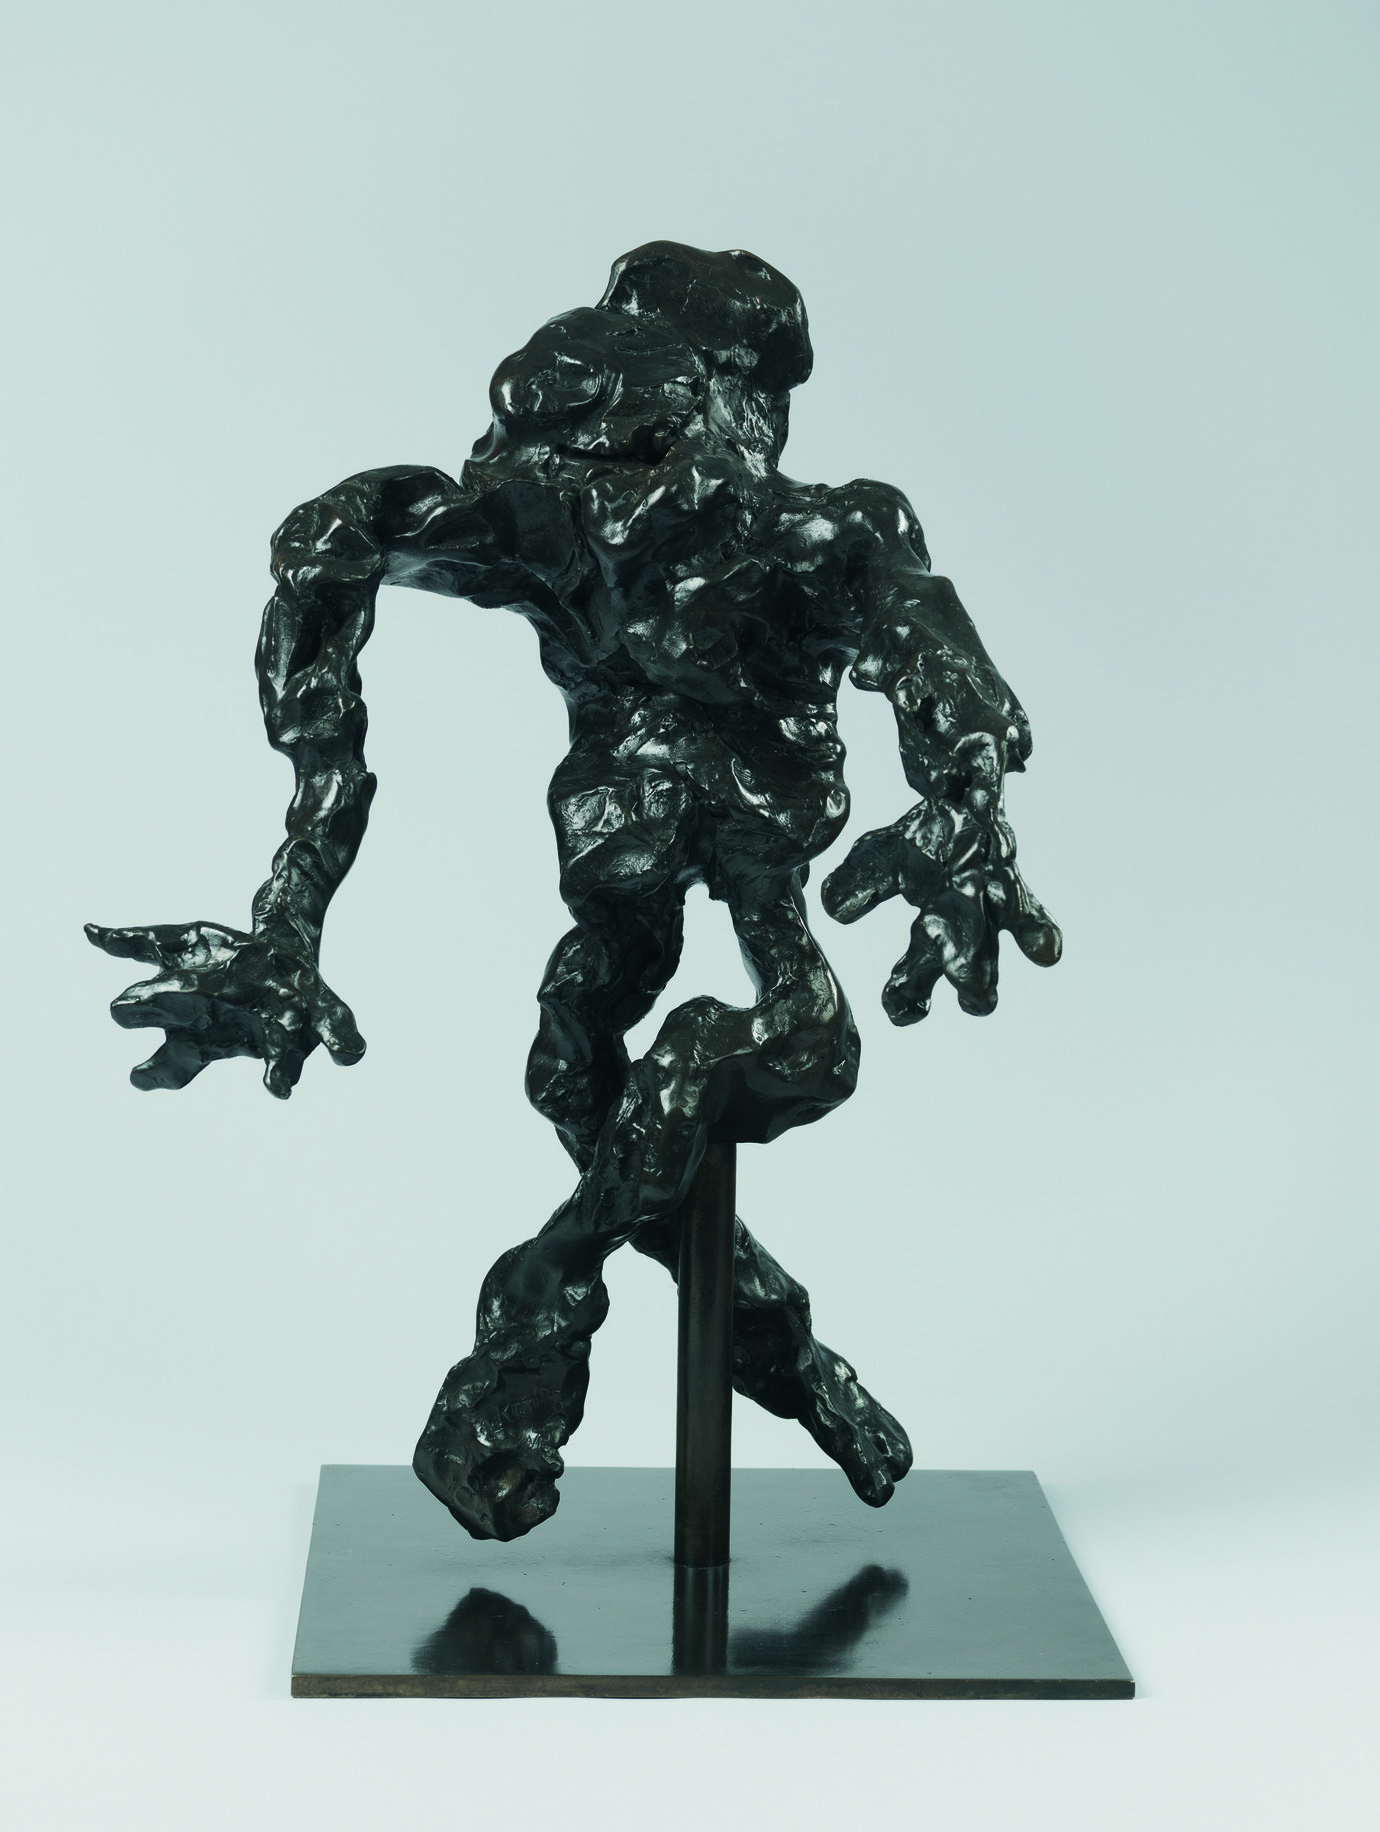 ", 1972. Bronze, 24-1/2"" x 17-3/4"" x 16"" (62.2 cm x 45.1 cm x 40.6 cm)."